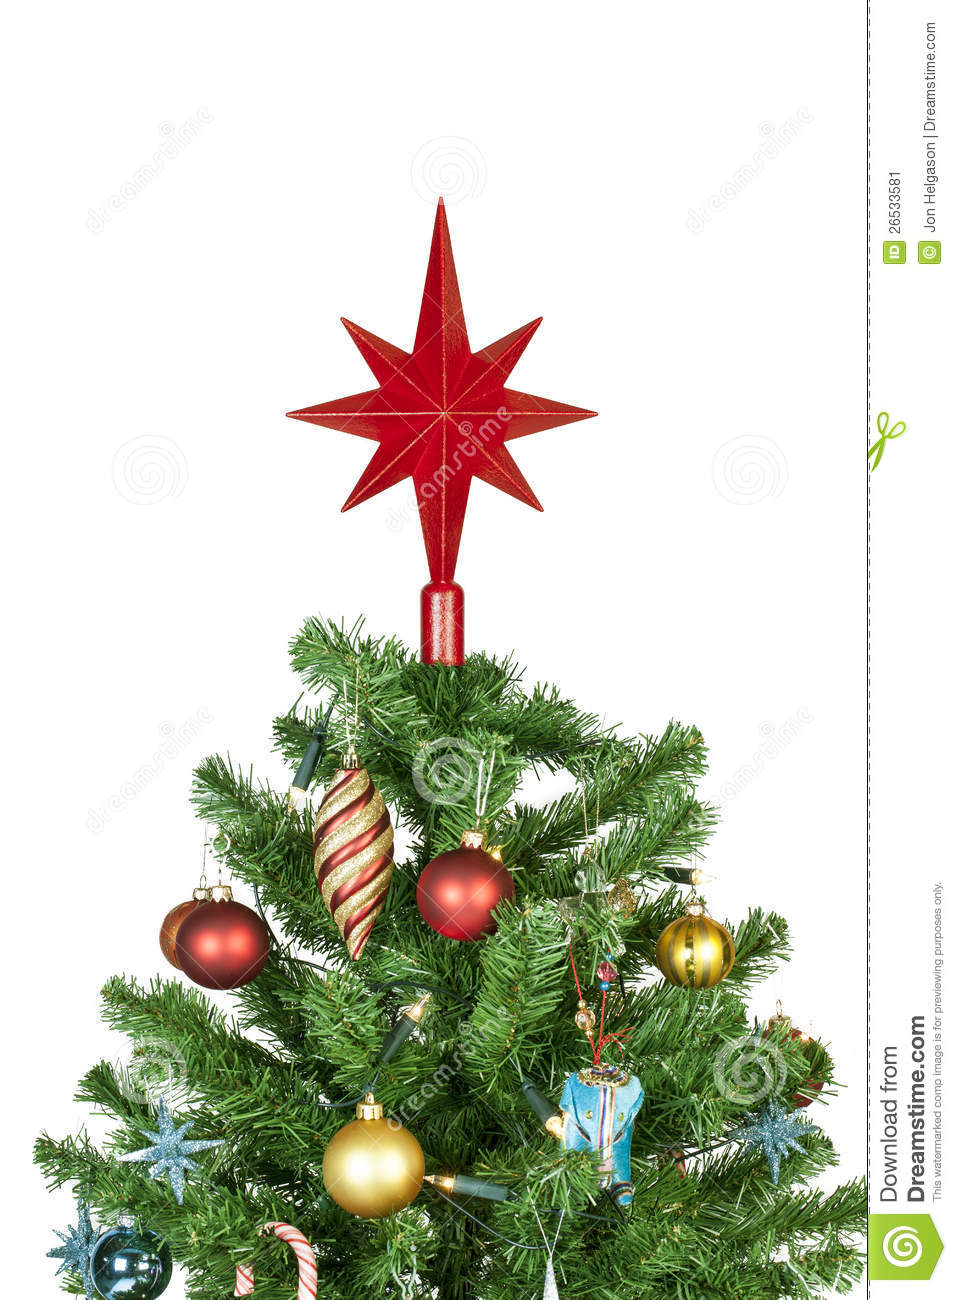 Christmas Tree Top With Ornaments Stock Image - Image: 26533581